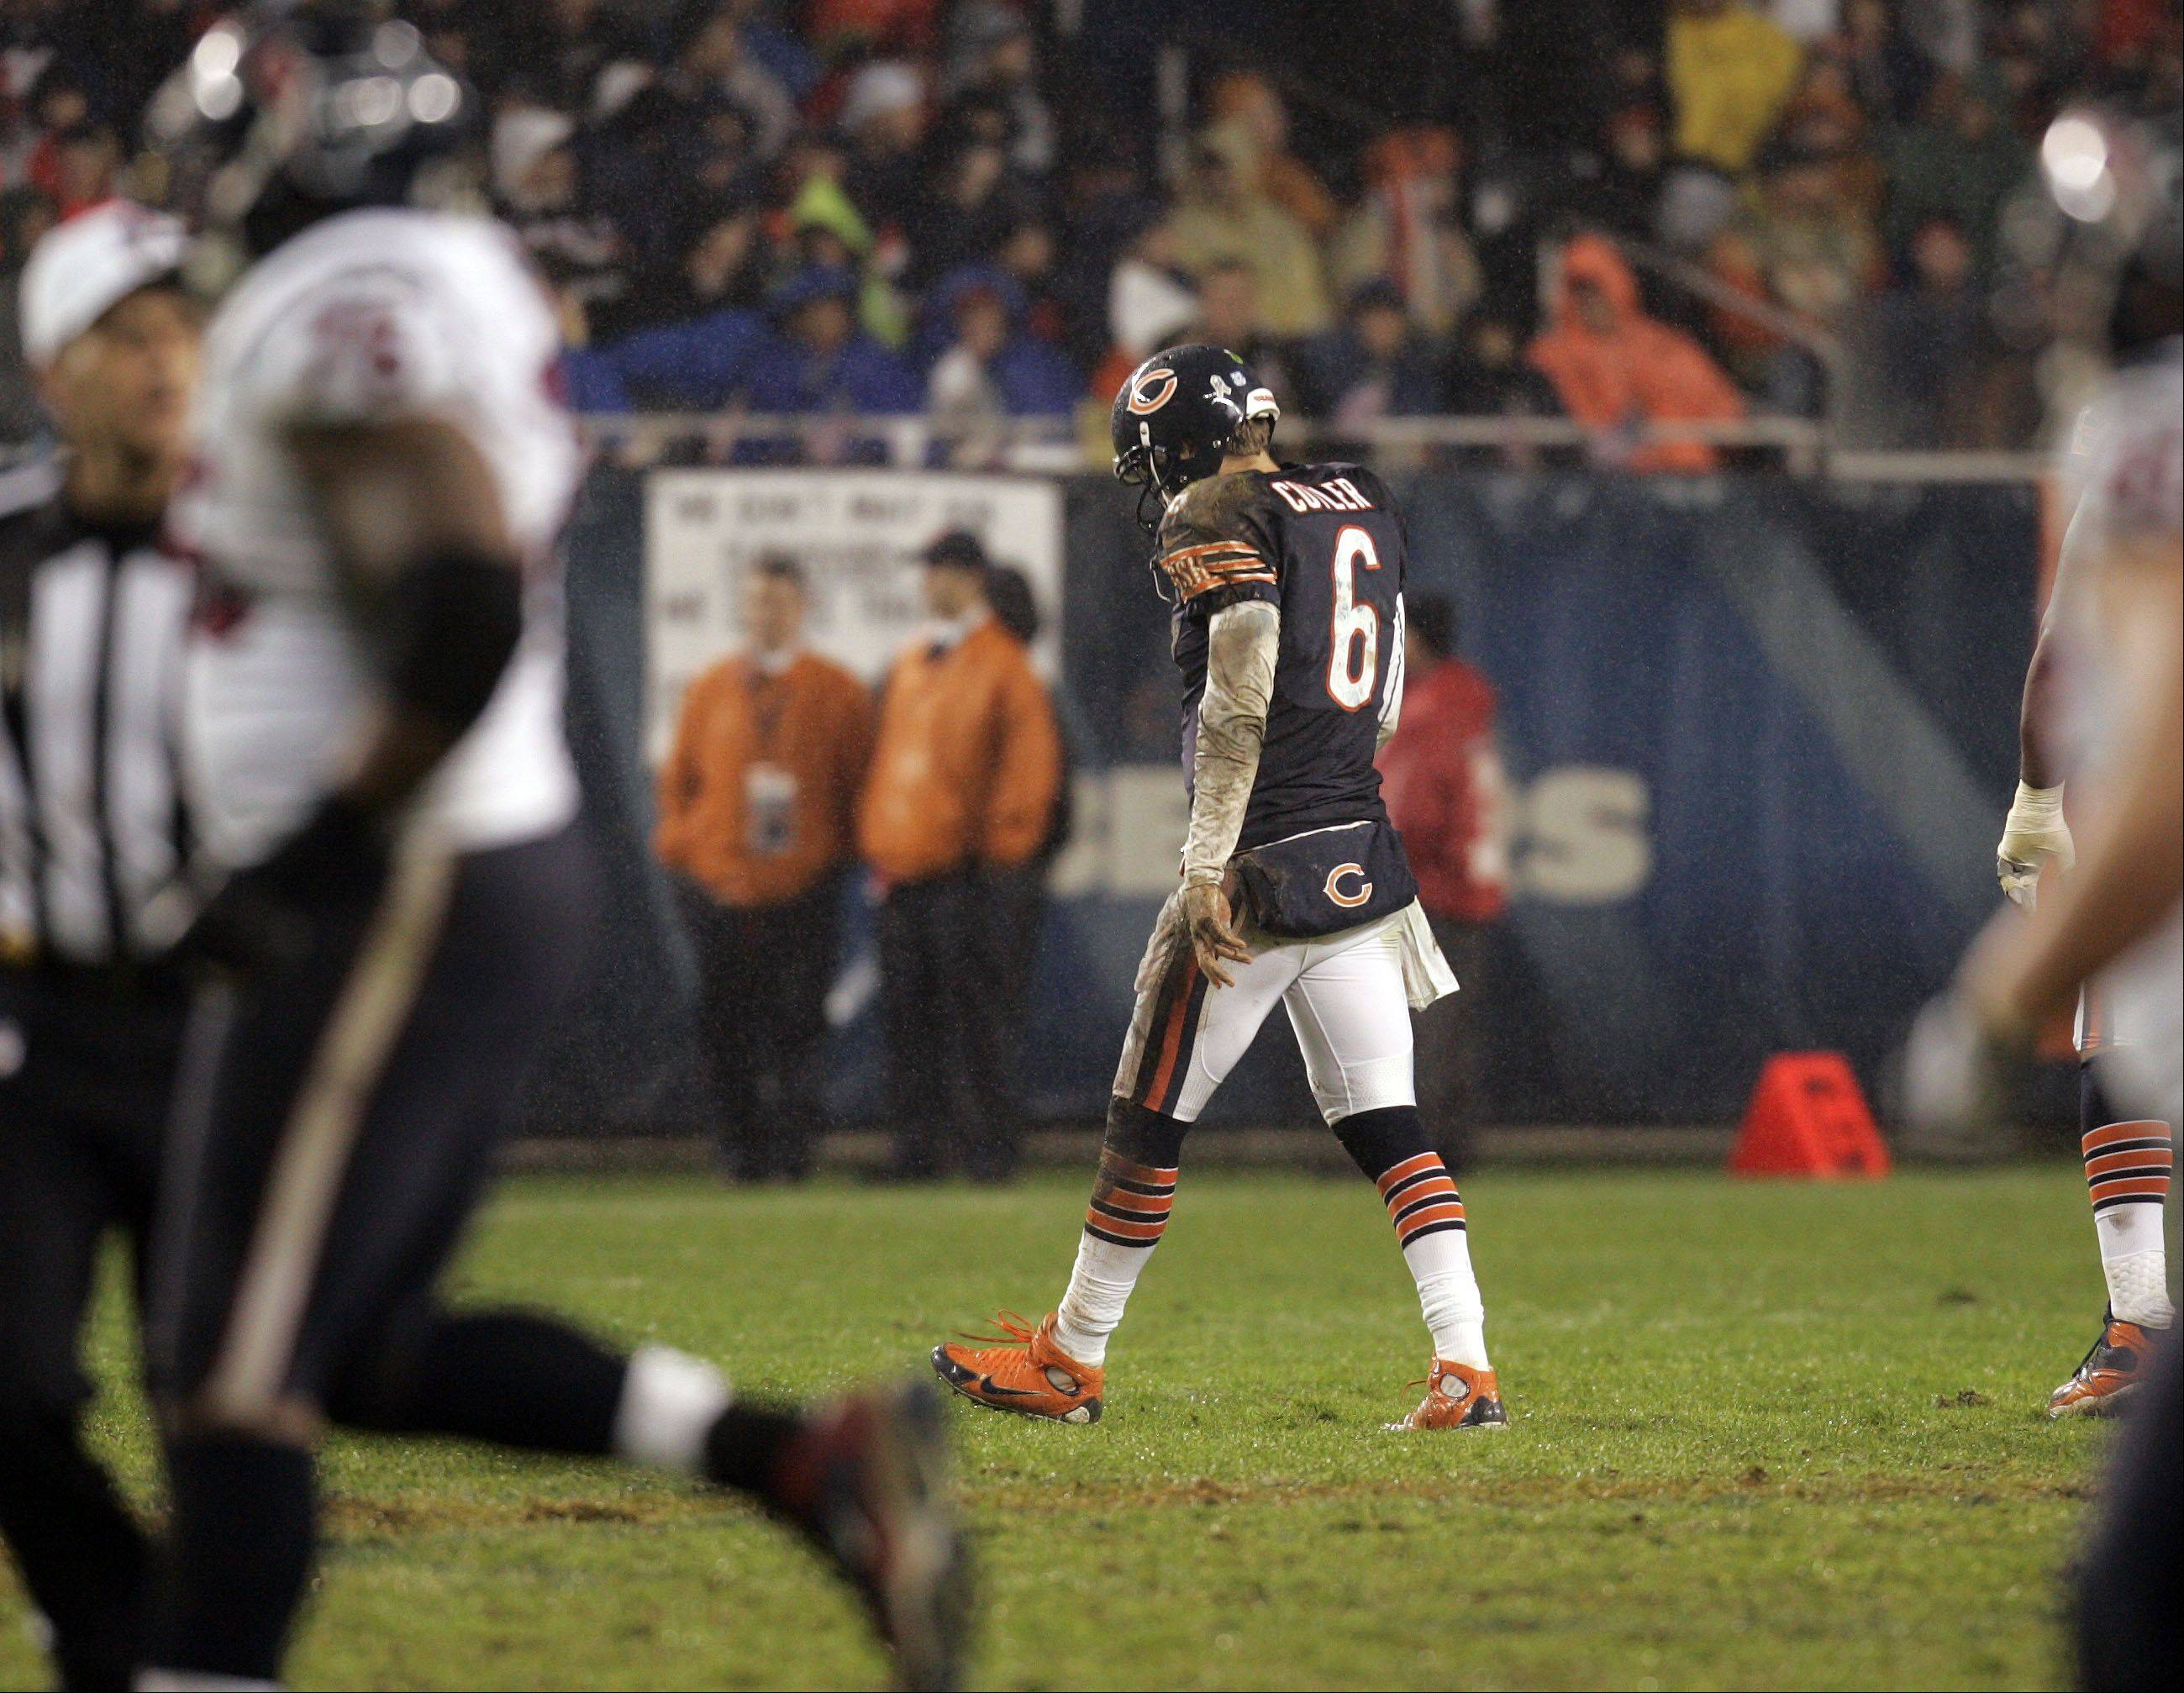 Chicago Bears quarterback Jay Cutler (6) walks off the field after another interception in the second quarter.